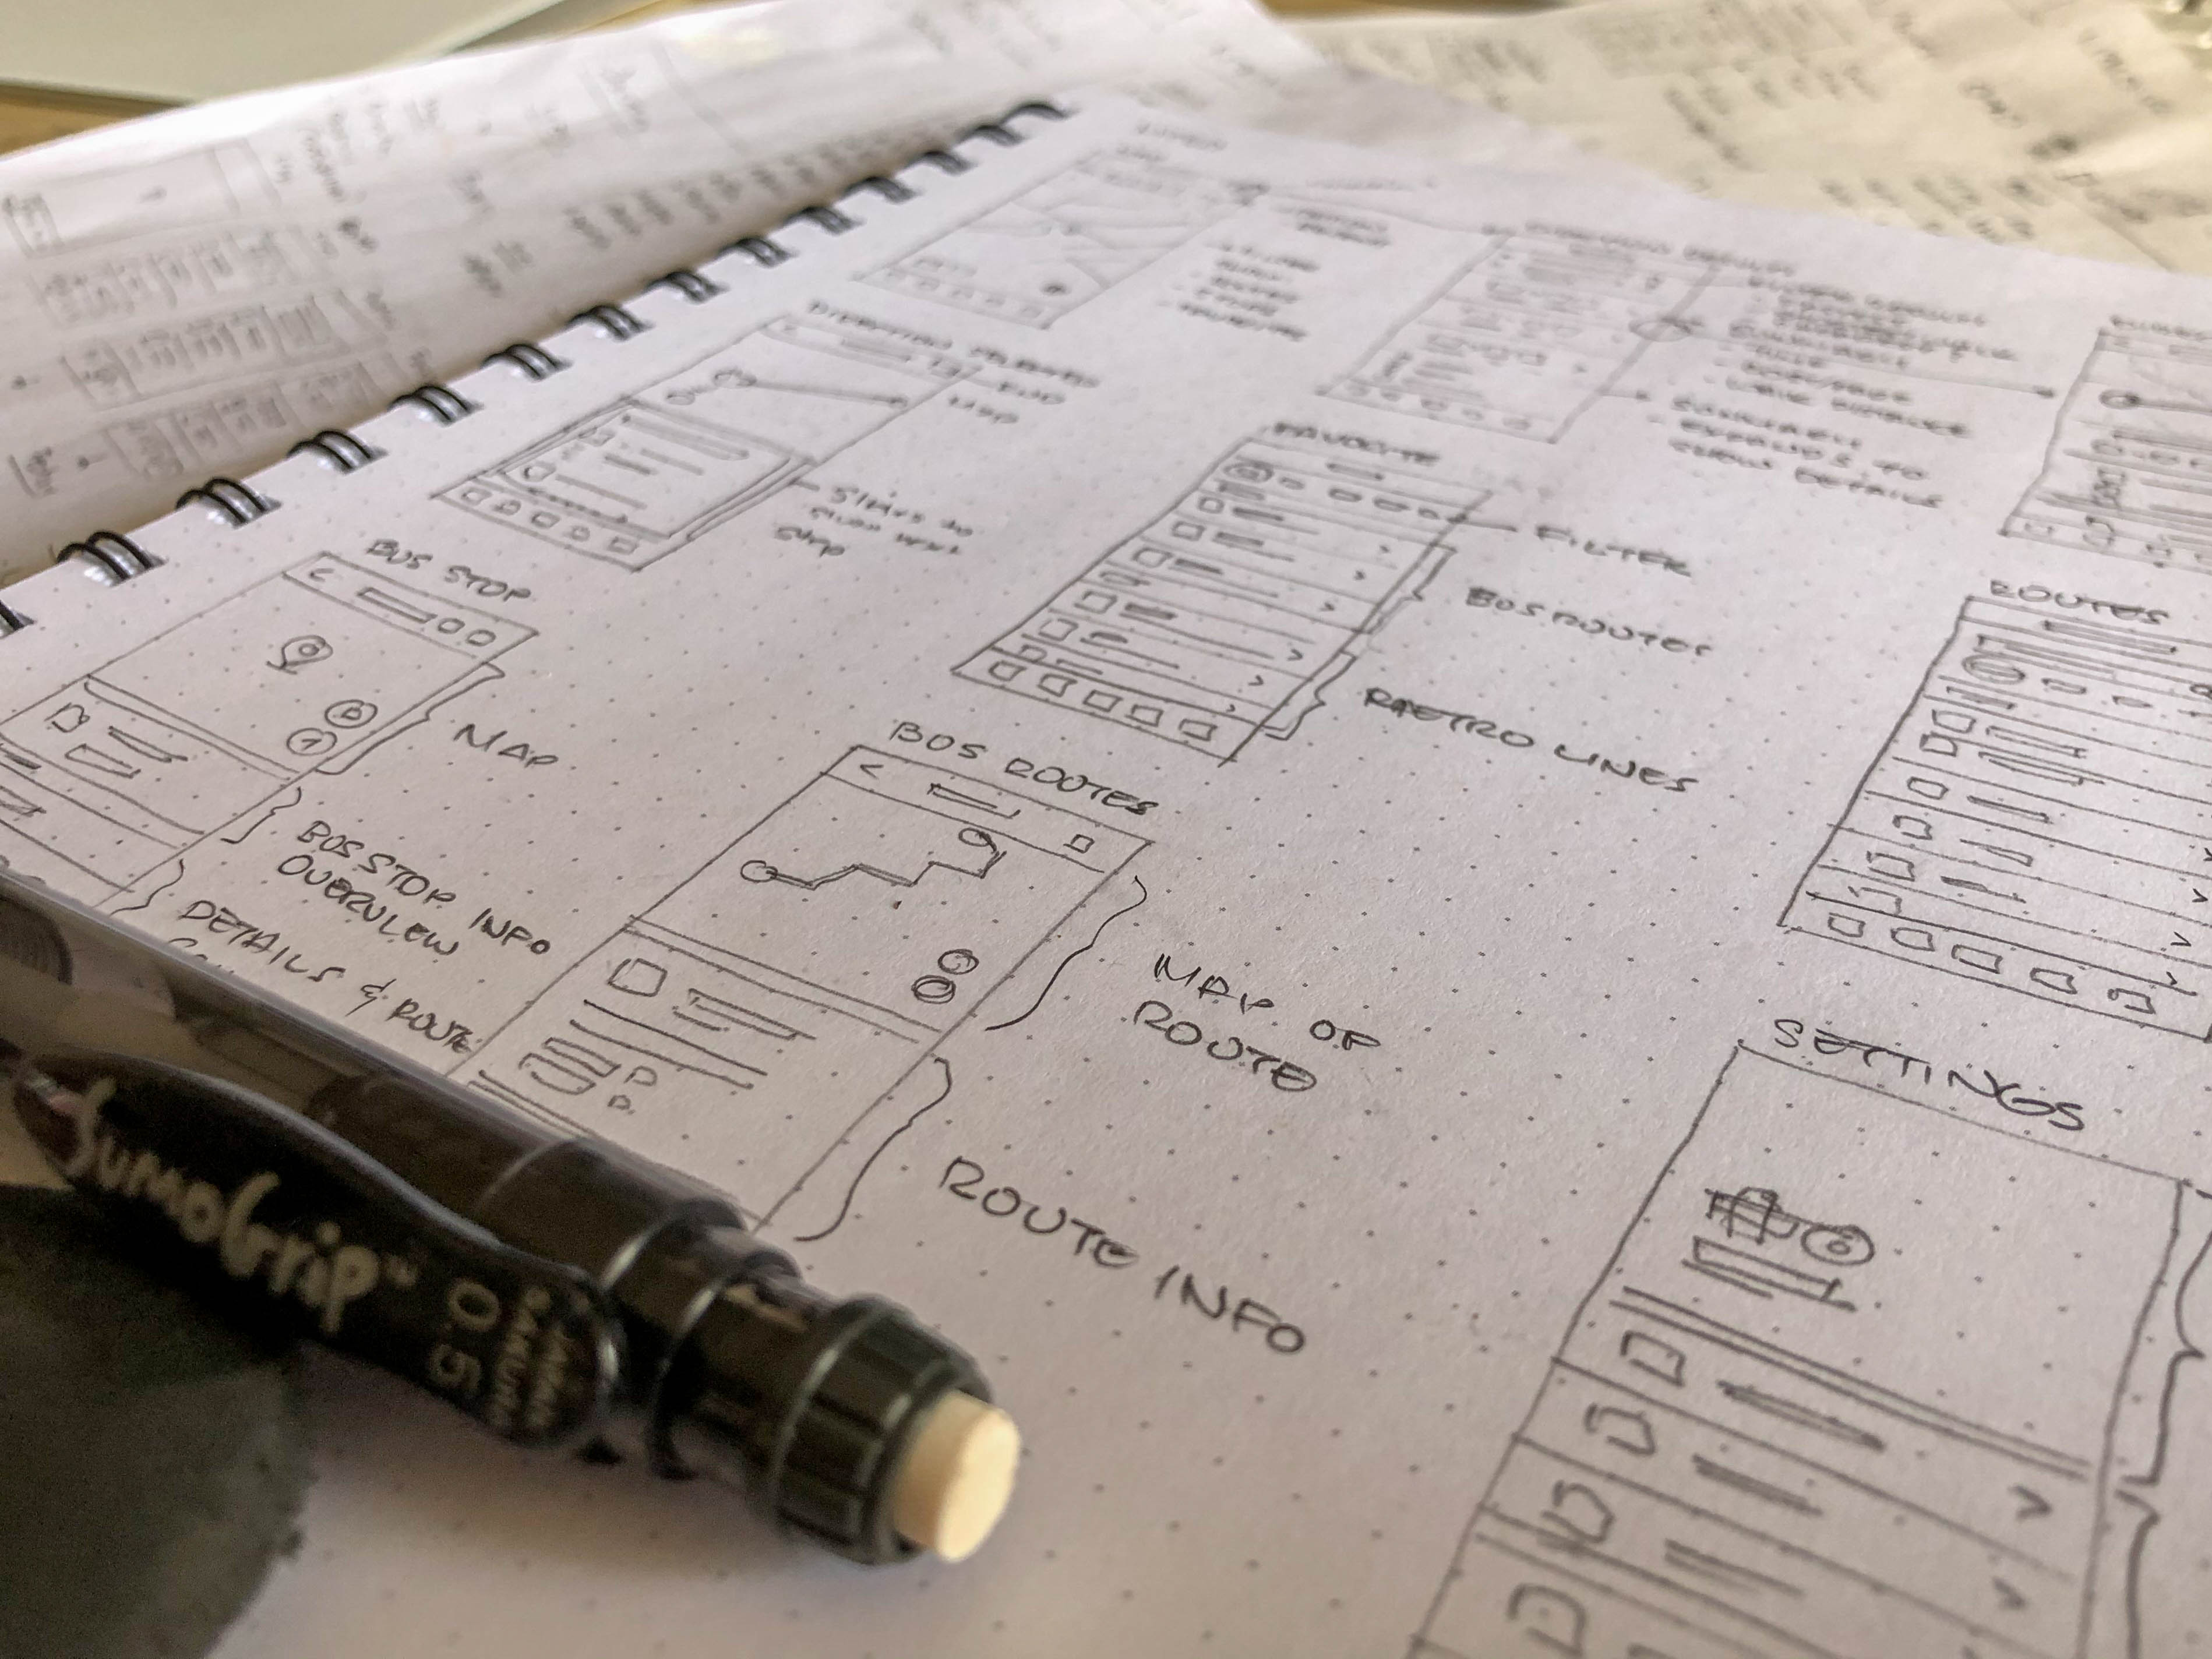 MTRO wireframe sketch